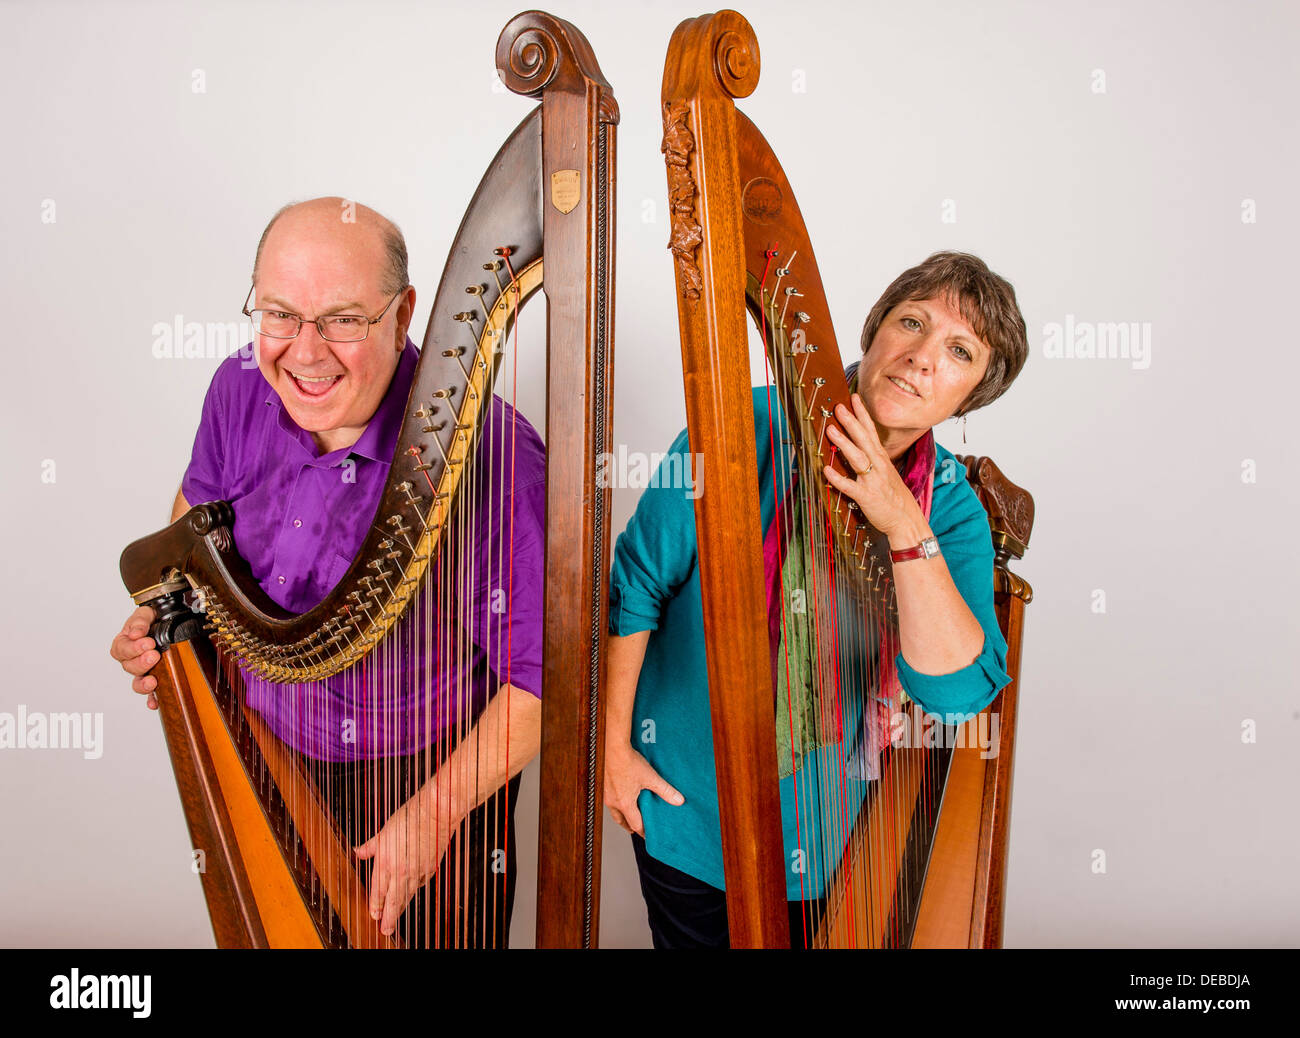 Two Welsh traditional harpists folk musicians Rhiain Bebb and Robin Huw Bowen - Stock Image